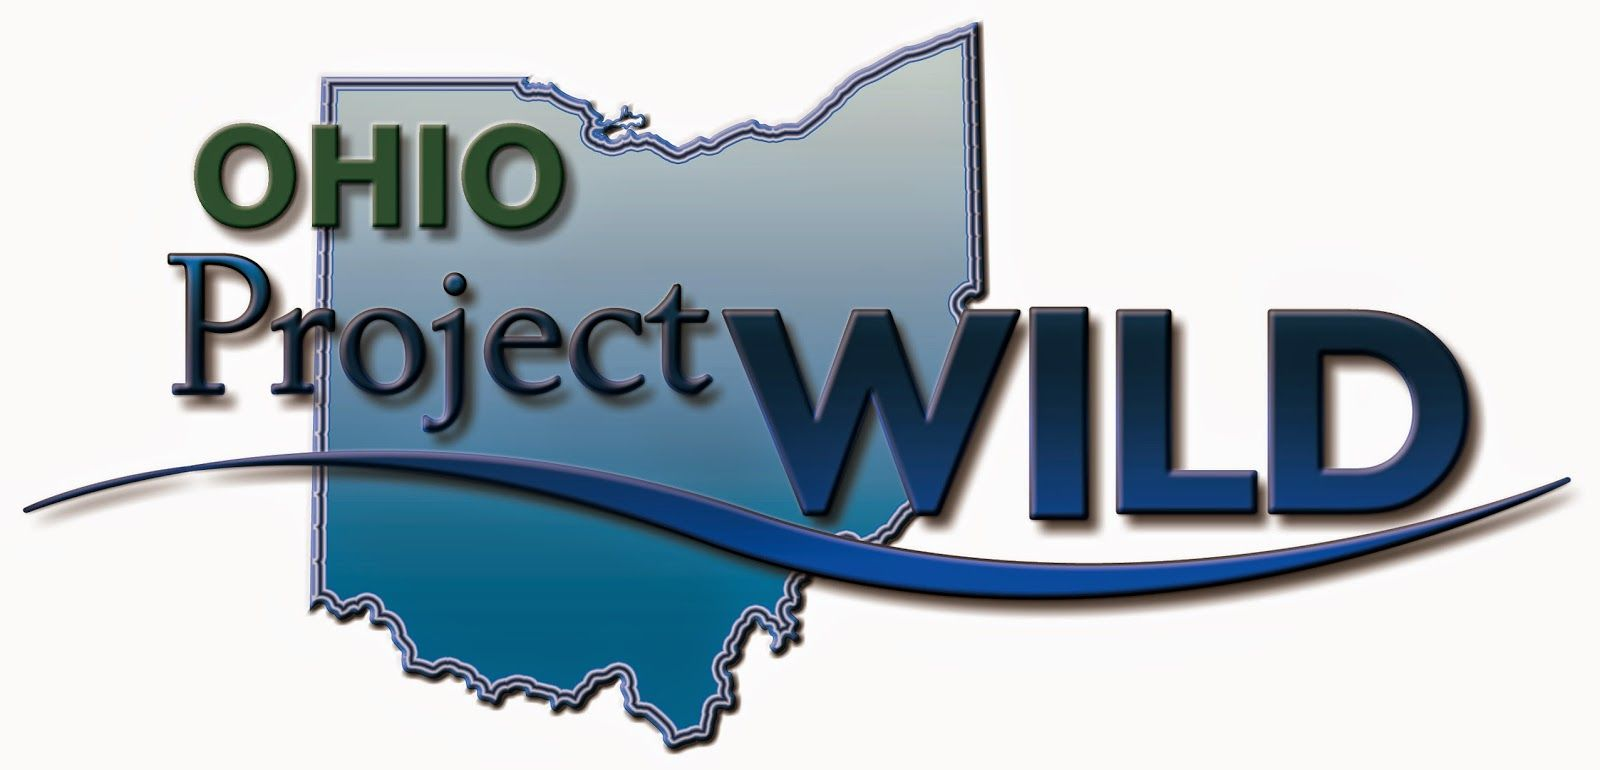 Ohio Project Wild lettering on a graphic of the state of Ohio